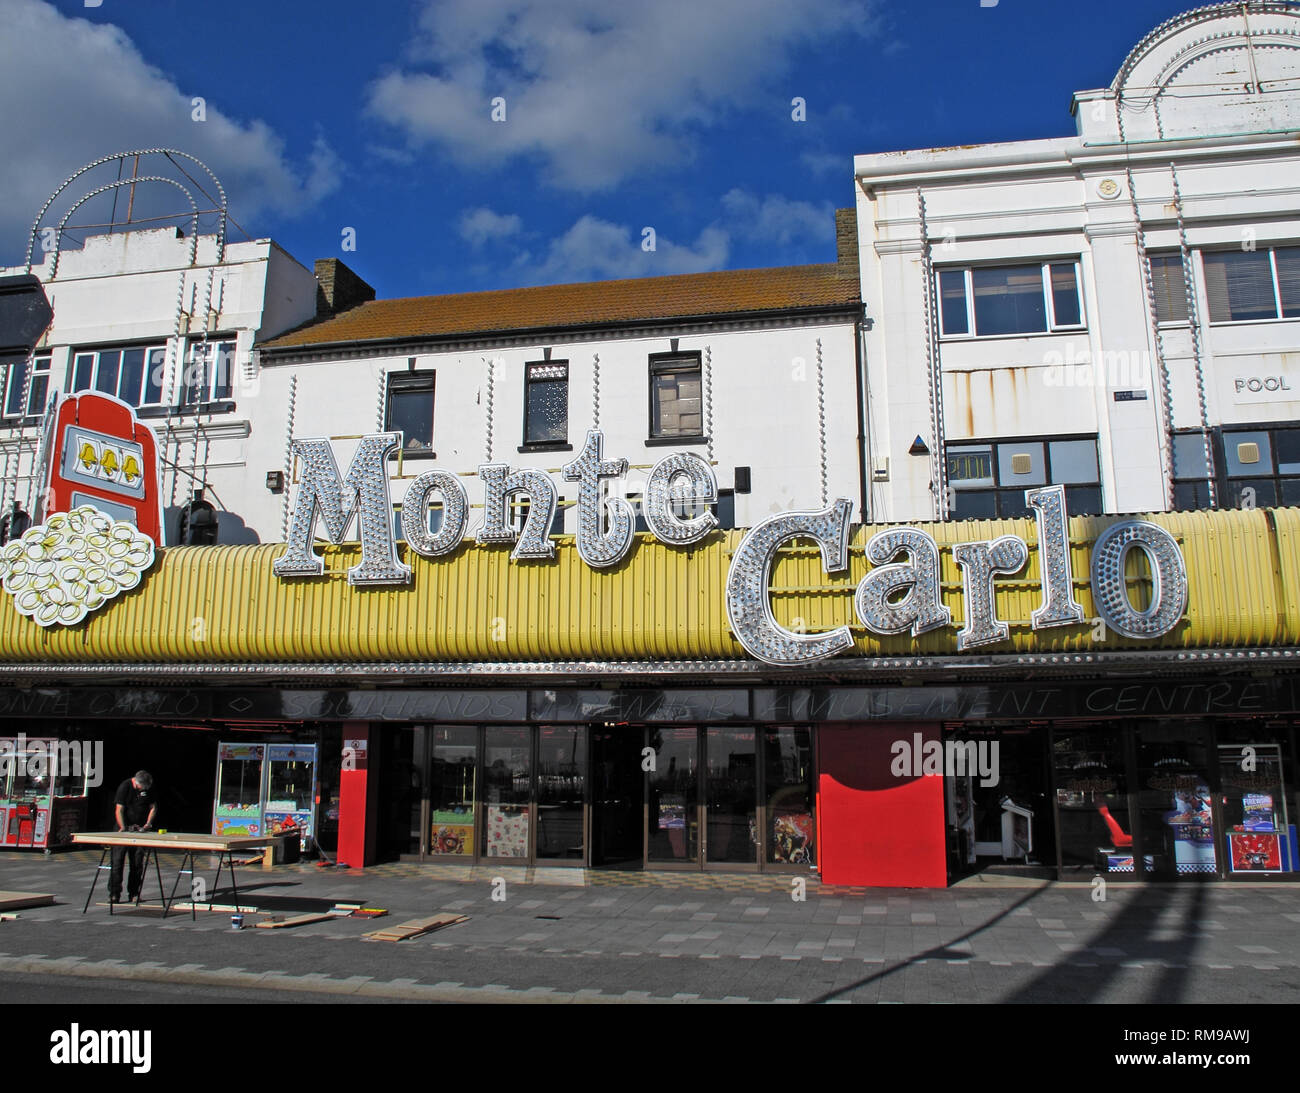 Monte Carlo Amusement Arcade, Marine Parade, Southend-on-sea, Essex, South East England, UK, SS1 2EJ - Stock Image